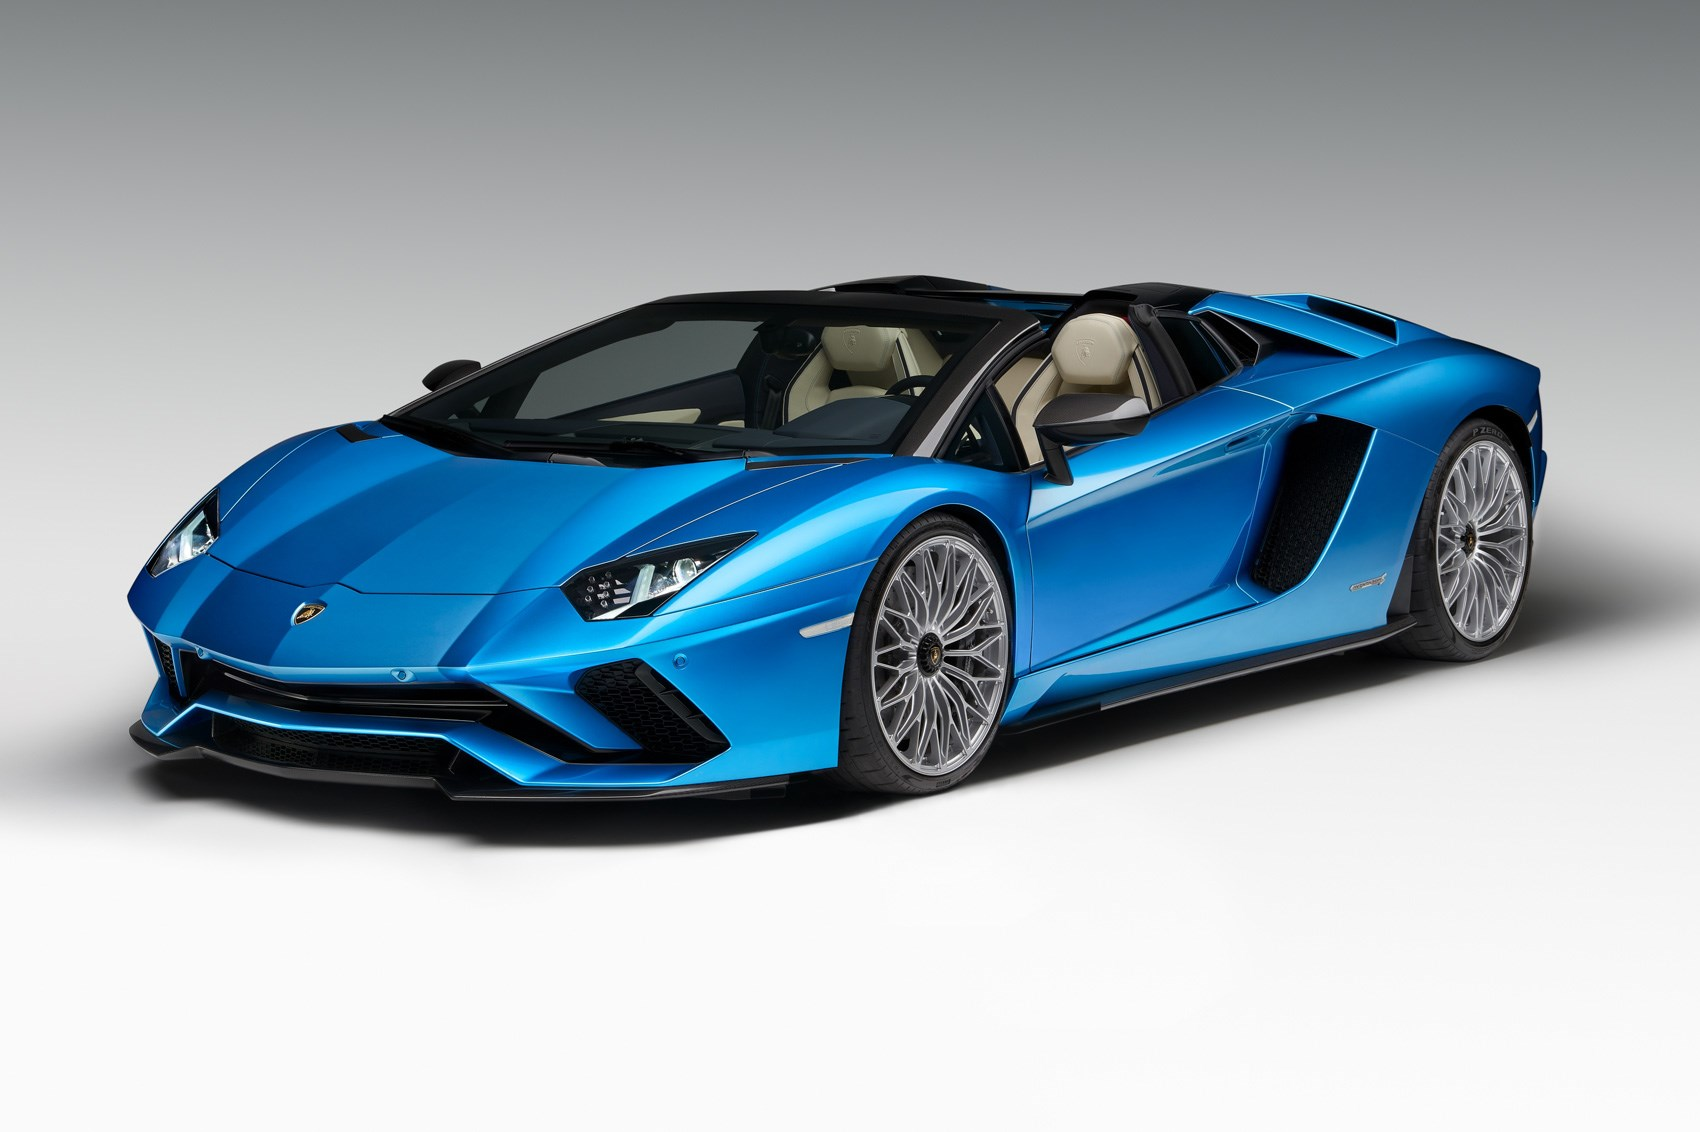 Lamborghini Aventador S Adds $460247 Roadster Model, Looks Very Desirable